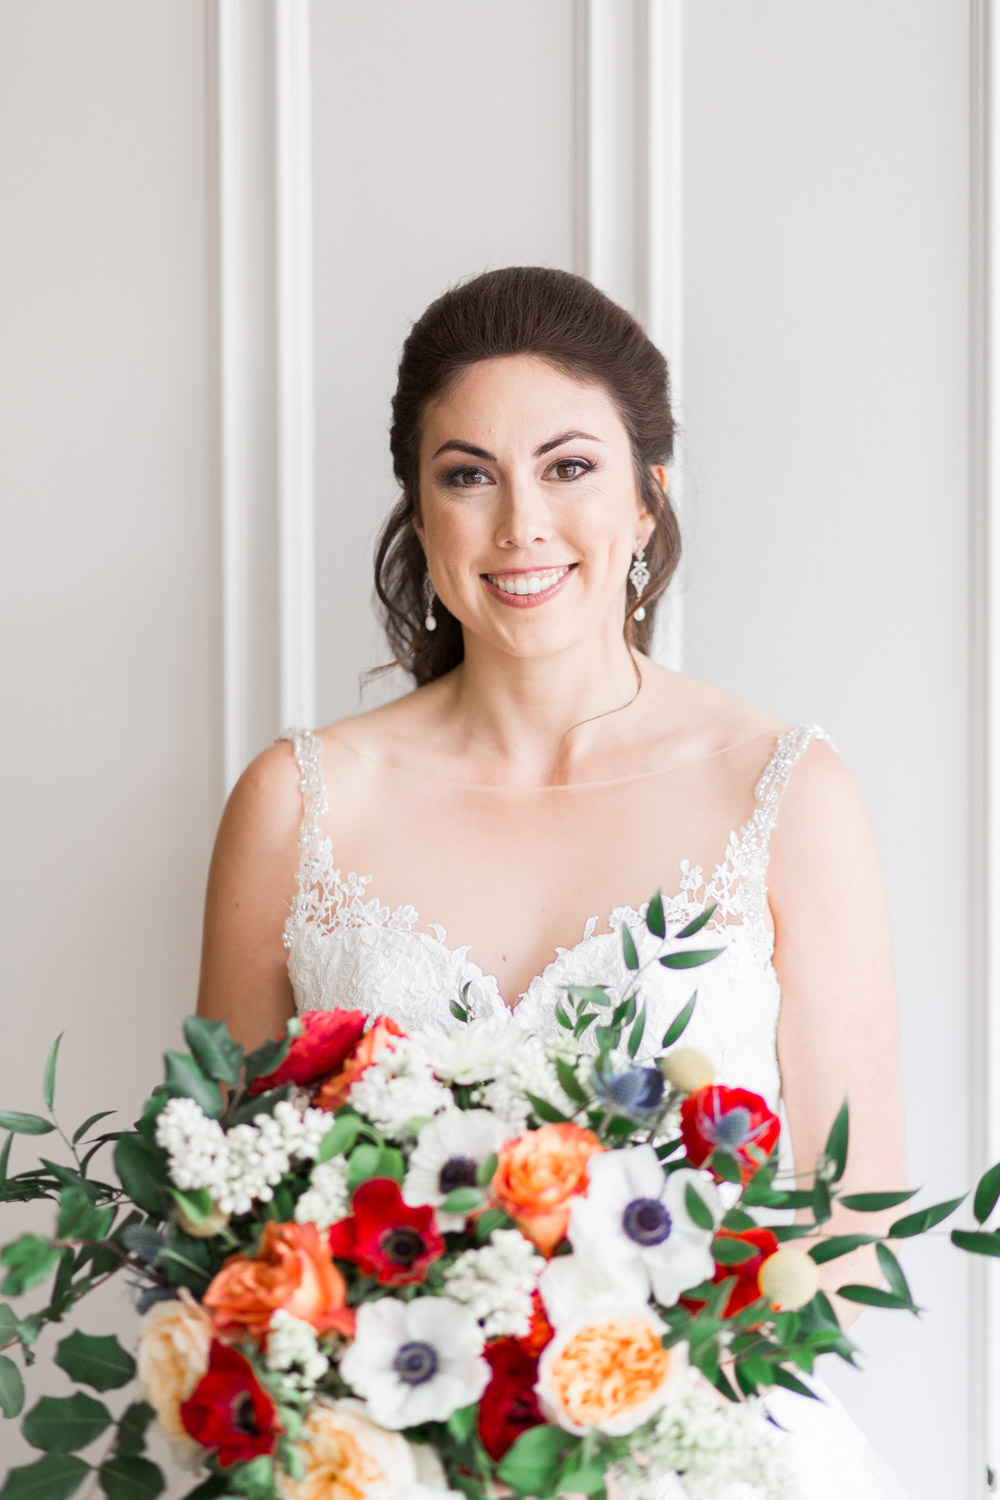 Timeless bridal portrait of bride smiling at the camera in front of a white backdrop, Cavin Elizabeth Photography